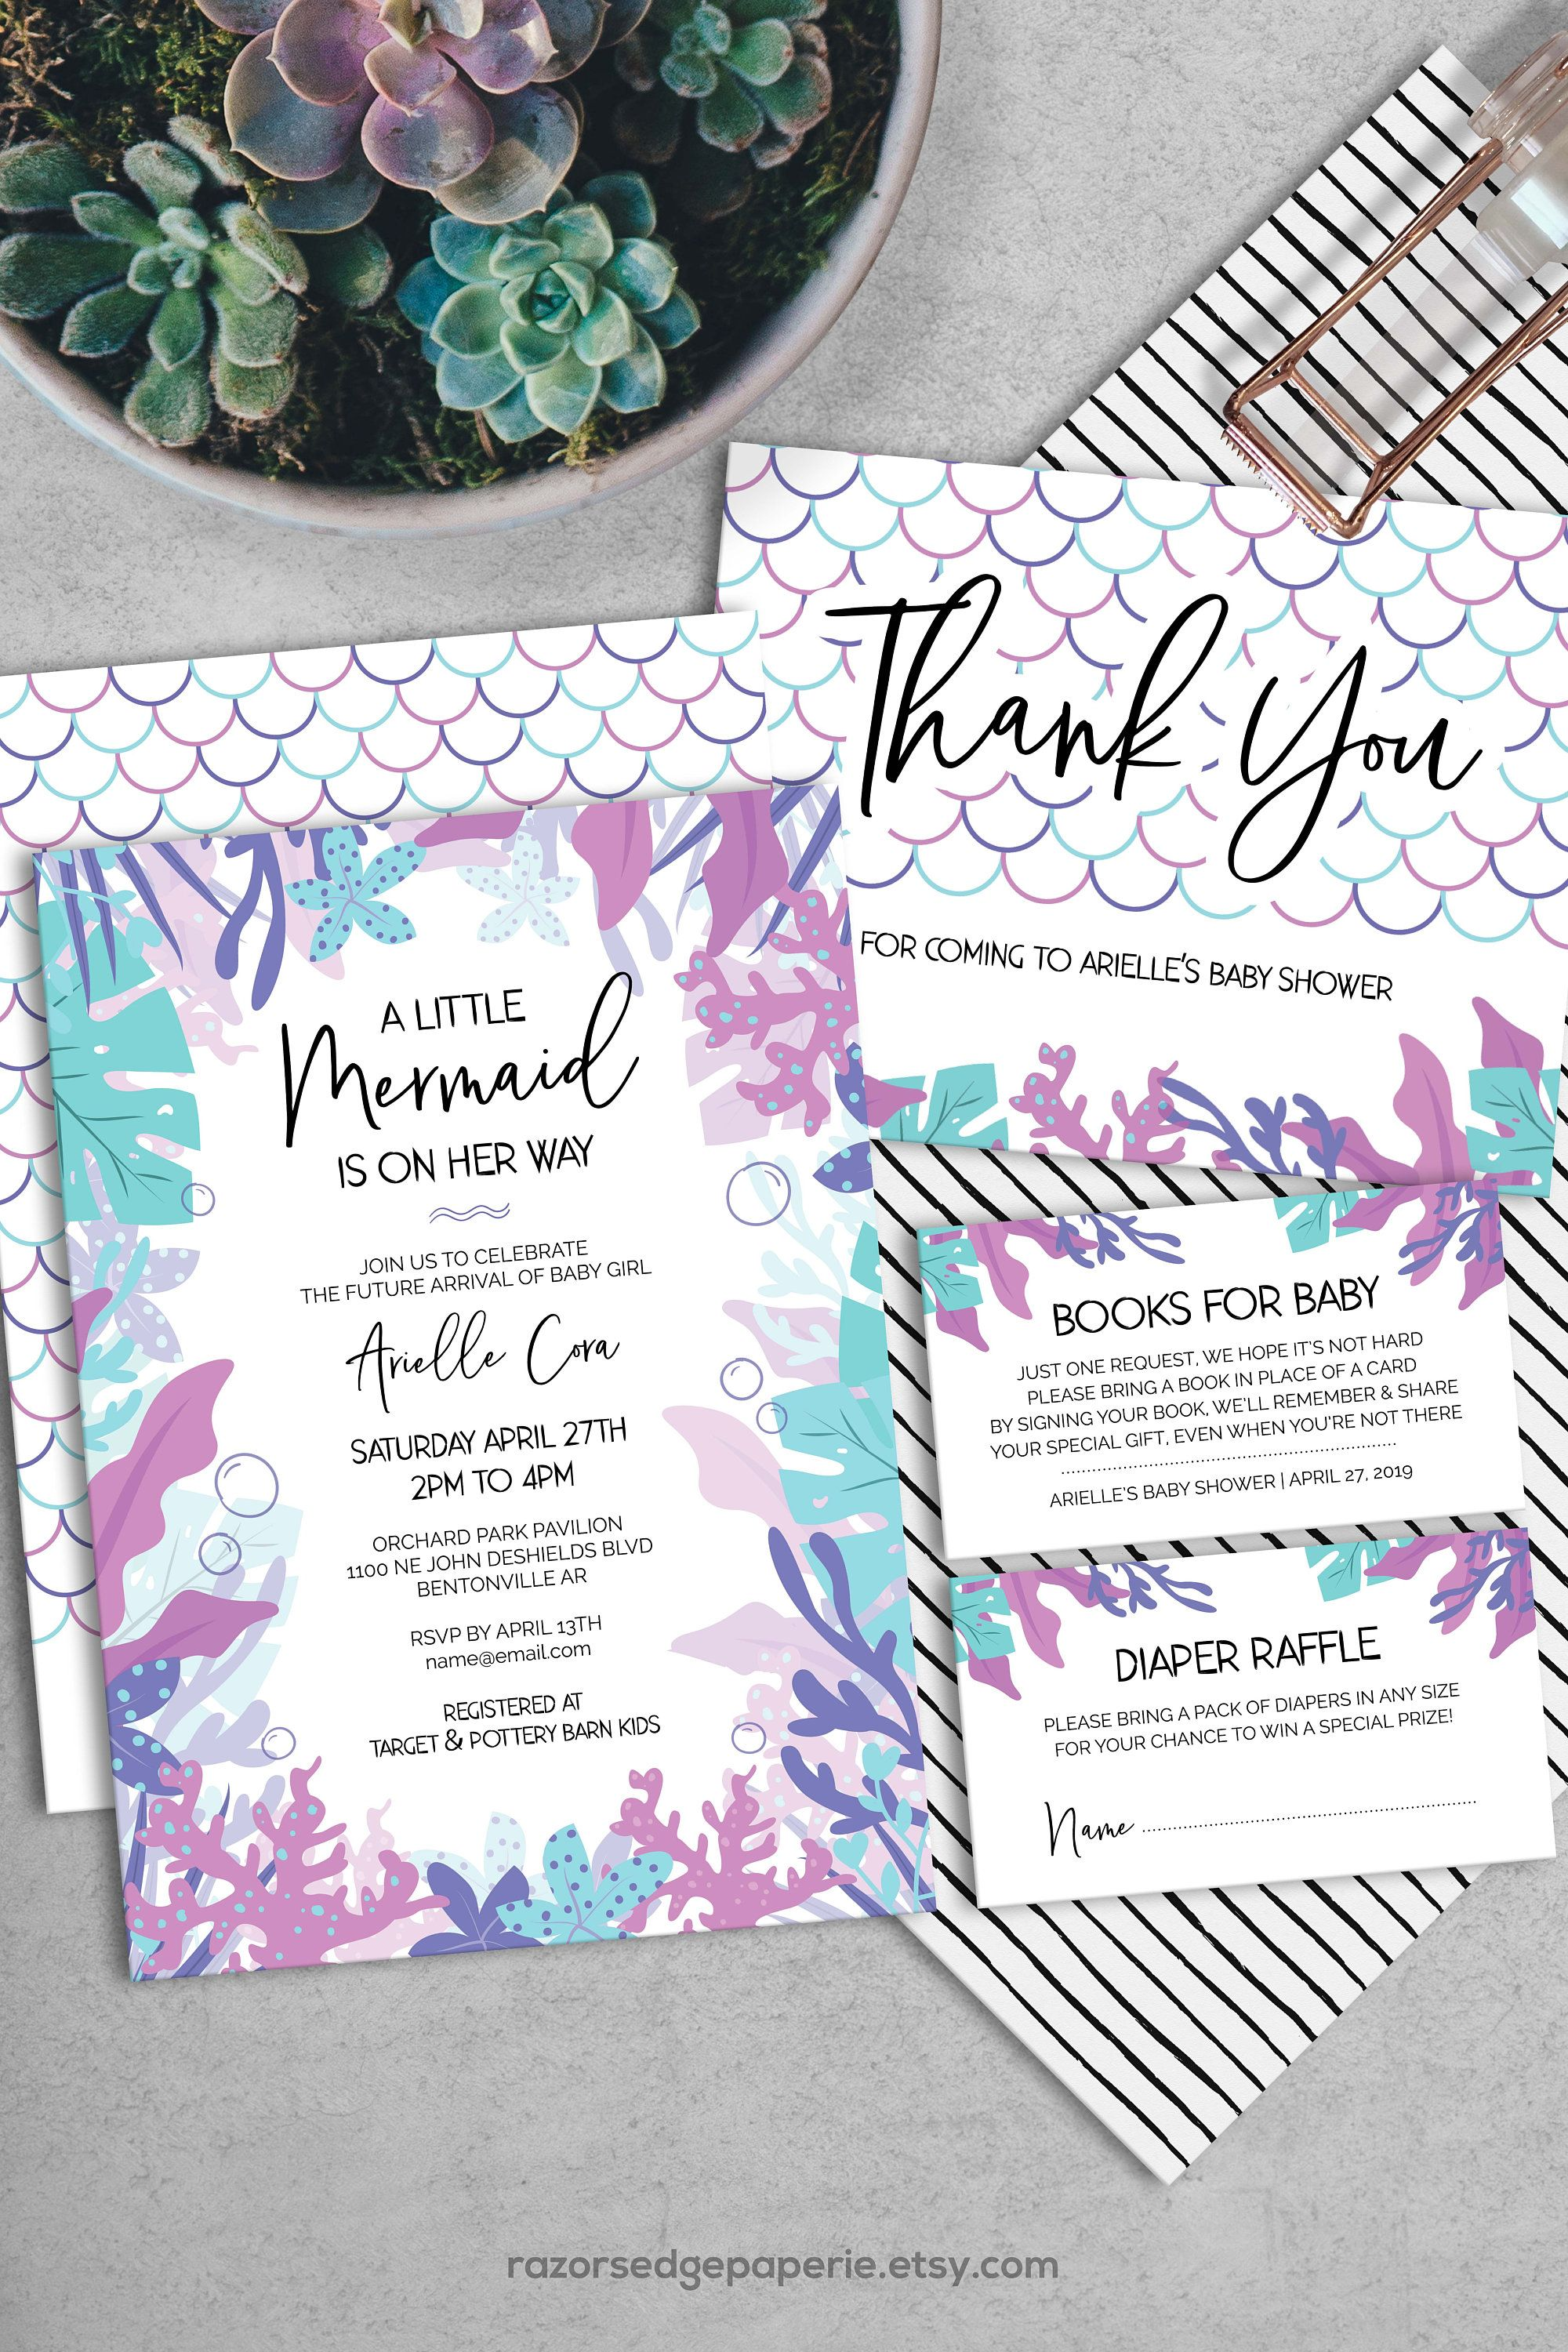 image about Printable Mermaid Baby Shower Invitations called PRINTABLE Mermaid Child Shower Invitation Pack Quick